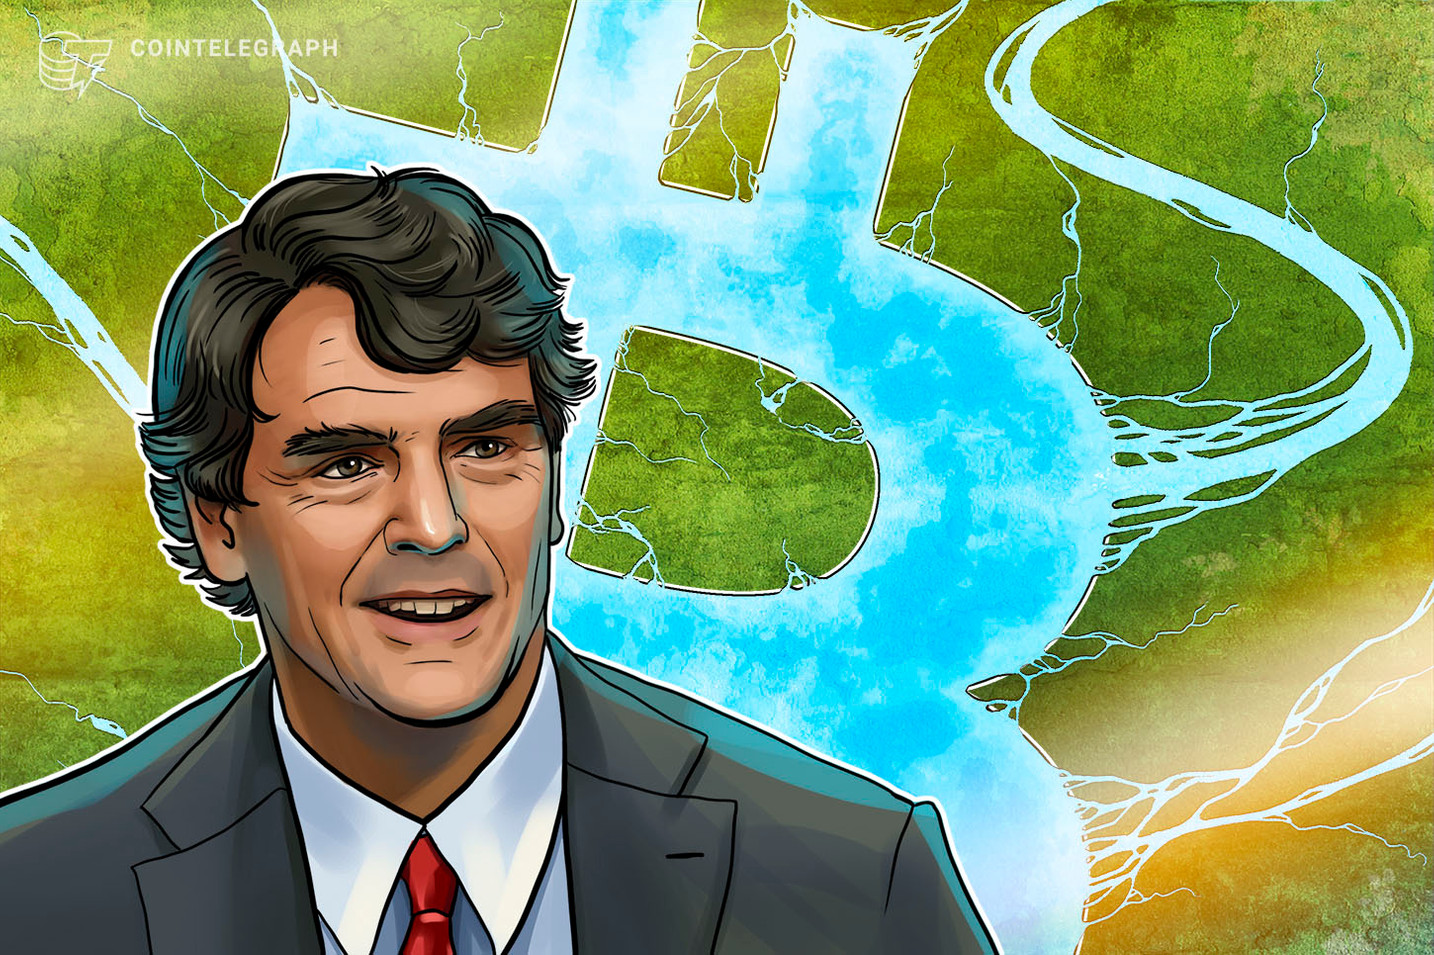 Bitcoin facilitates a global economy, says Tim Draper